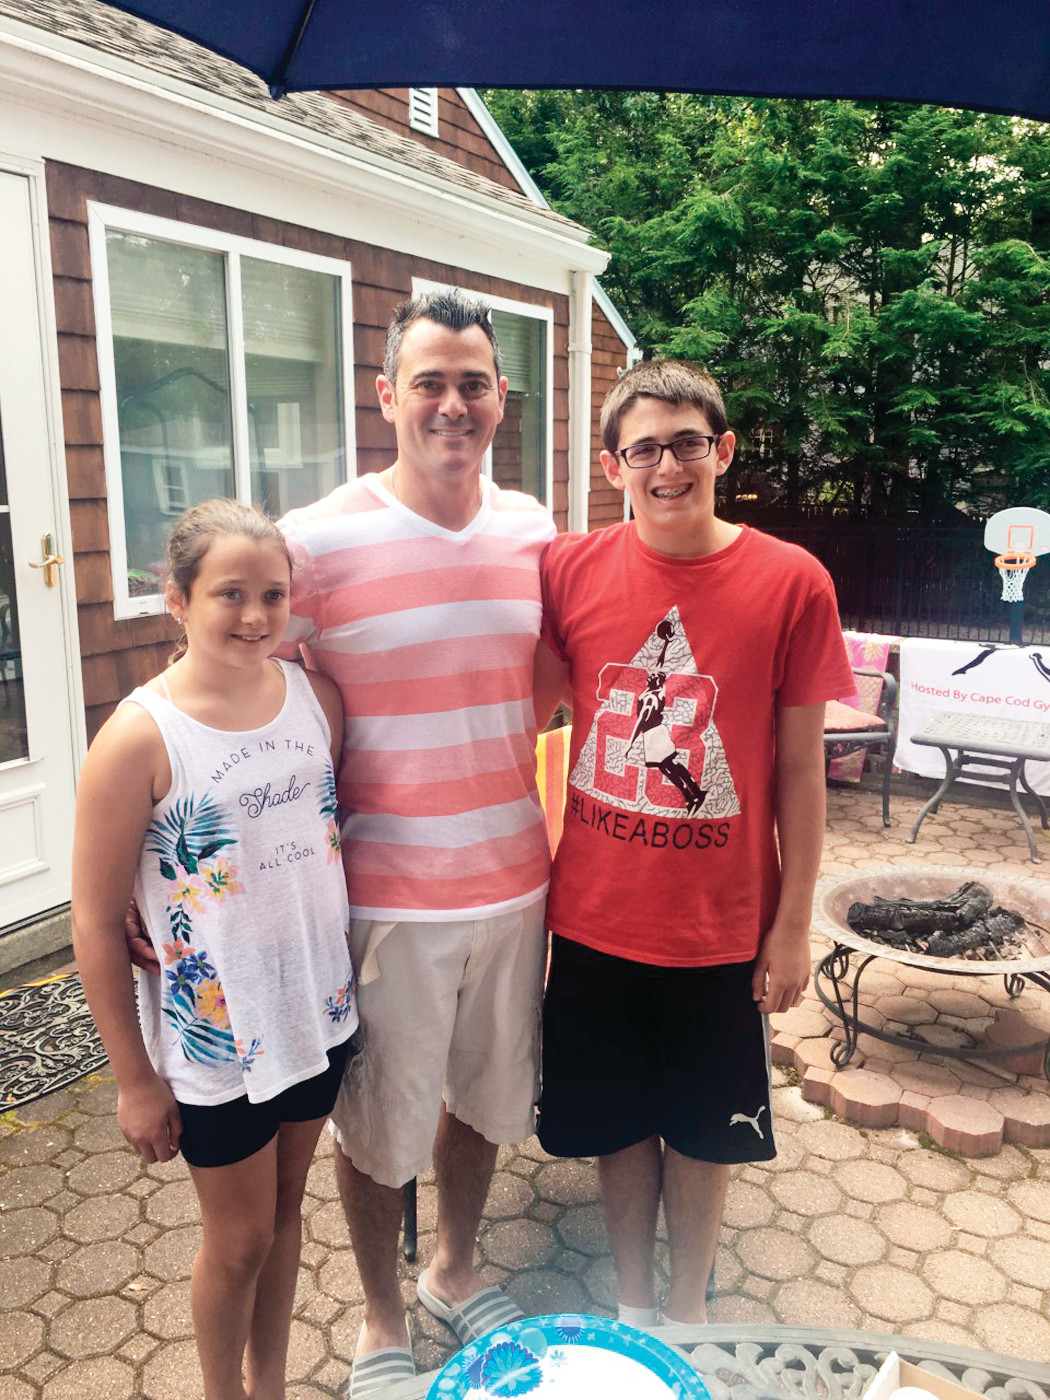 Mark Capuano, seen here with this daughter Kylie and son Jaden, is the owner of Capuano Reverse Mortgage, Inc.  As an experienced  lender, he is committed to assisting seniors secure a reverse mortgage so they can remain in their well-loved homes.